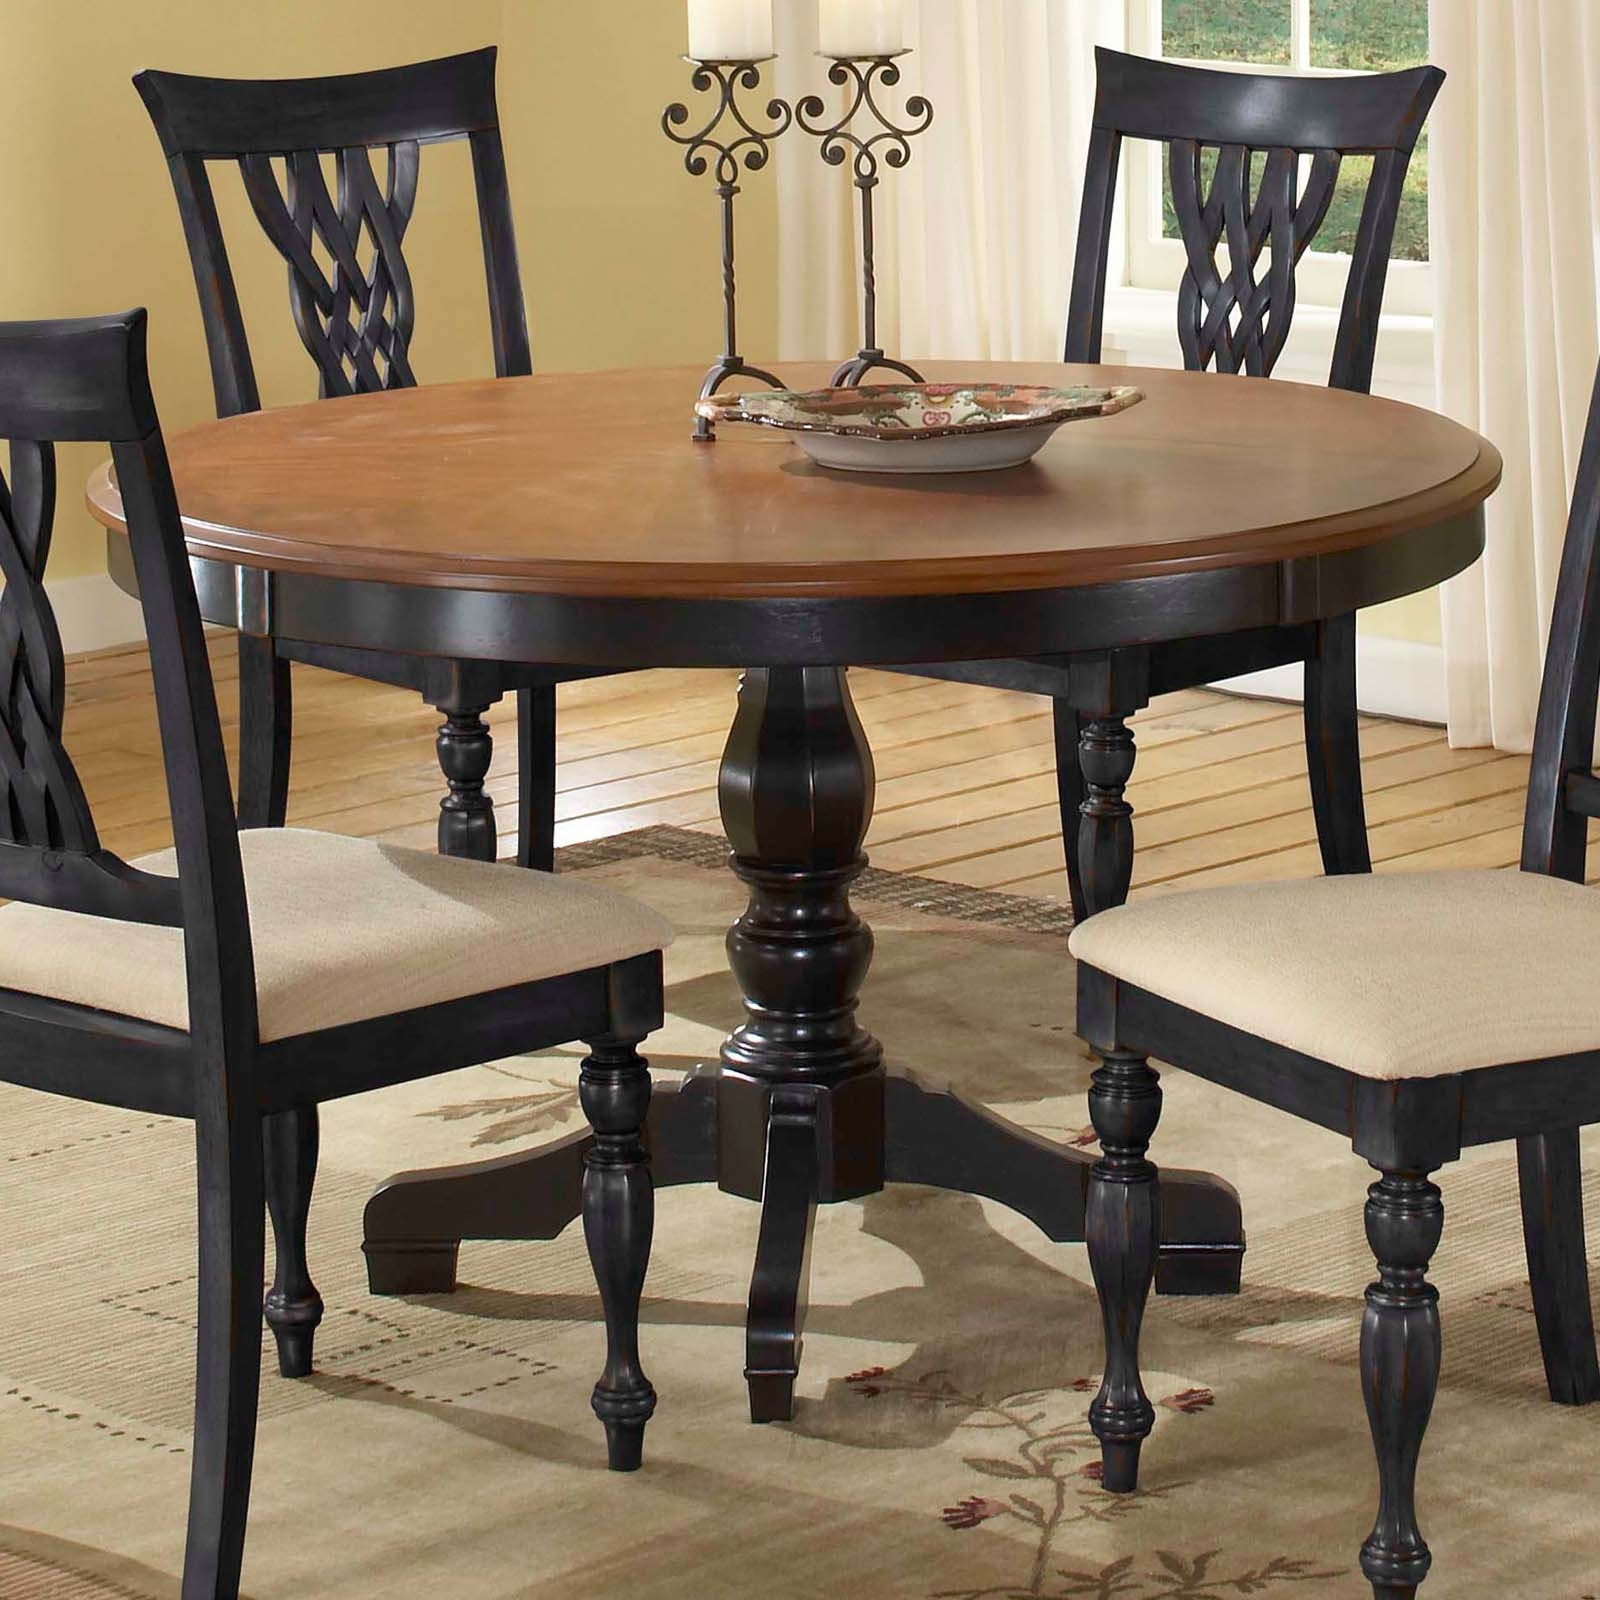 Dining Table Extension : Home Interior Design – Tips Build 48 Round Throughout Most Recently Released Jaxon Round Extension Dining Tables (Photo 8 of 20)